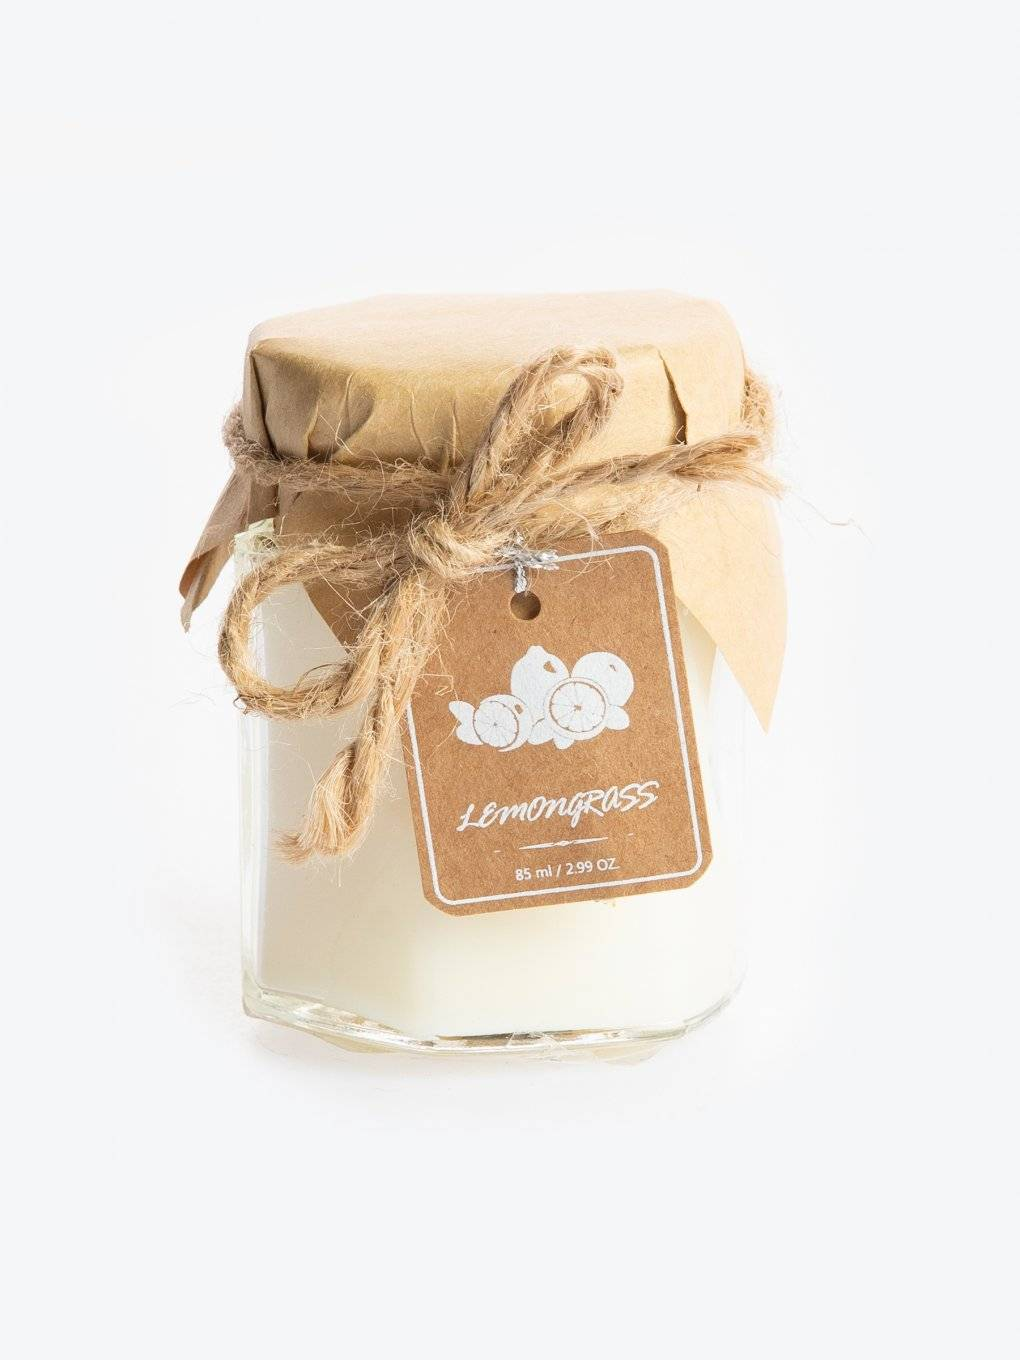 Lemon grass scented candle in jar